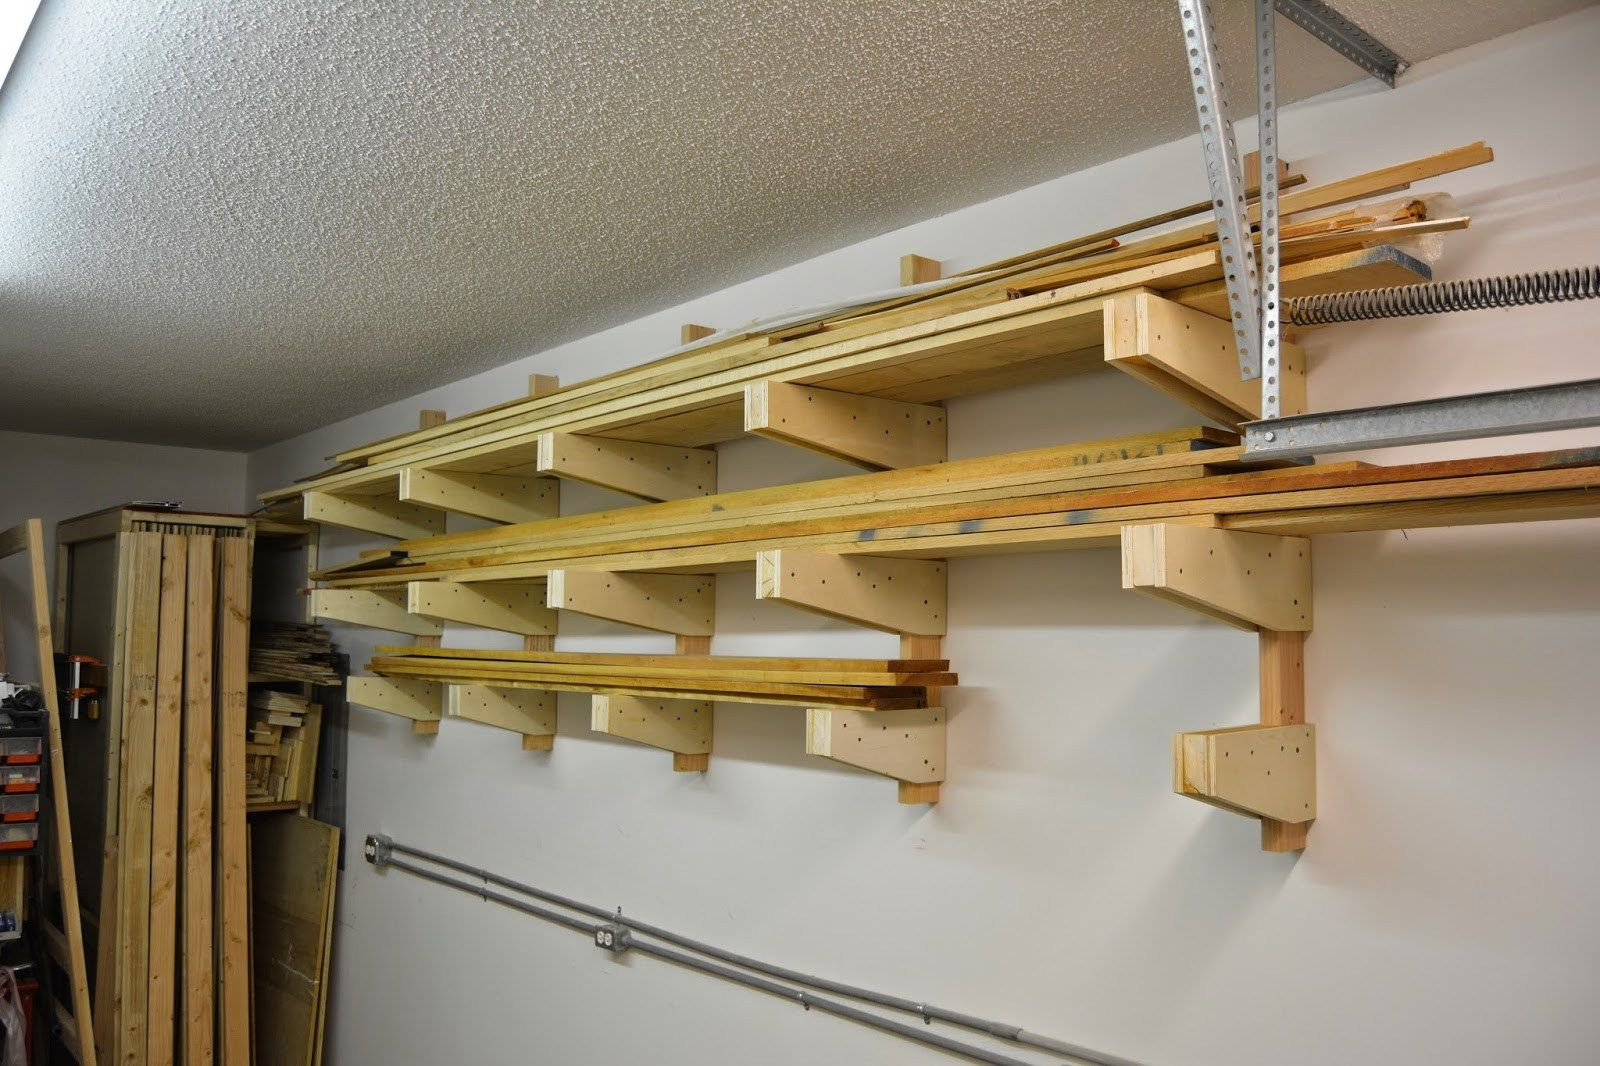 9 DIY Ideas For Wood Storage